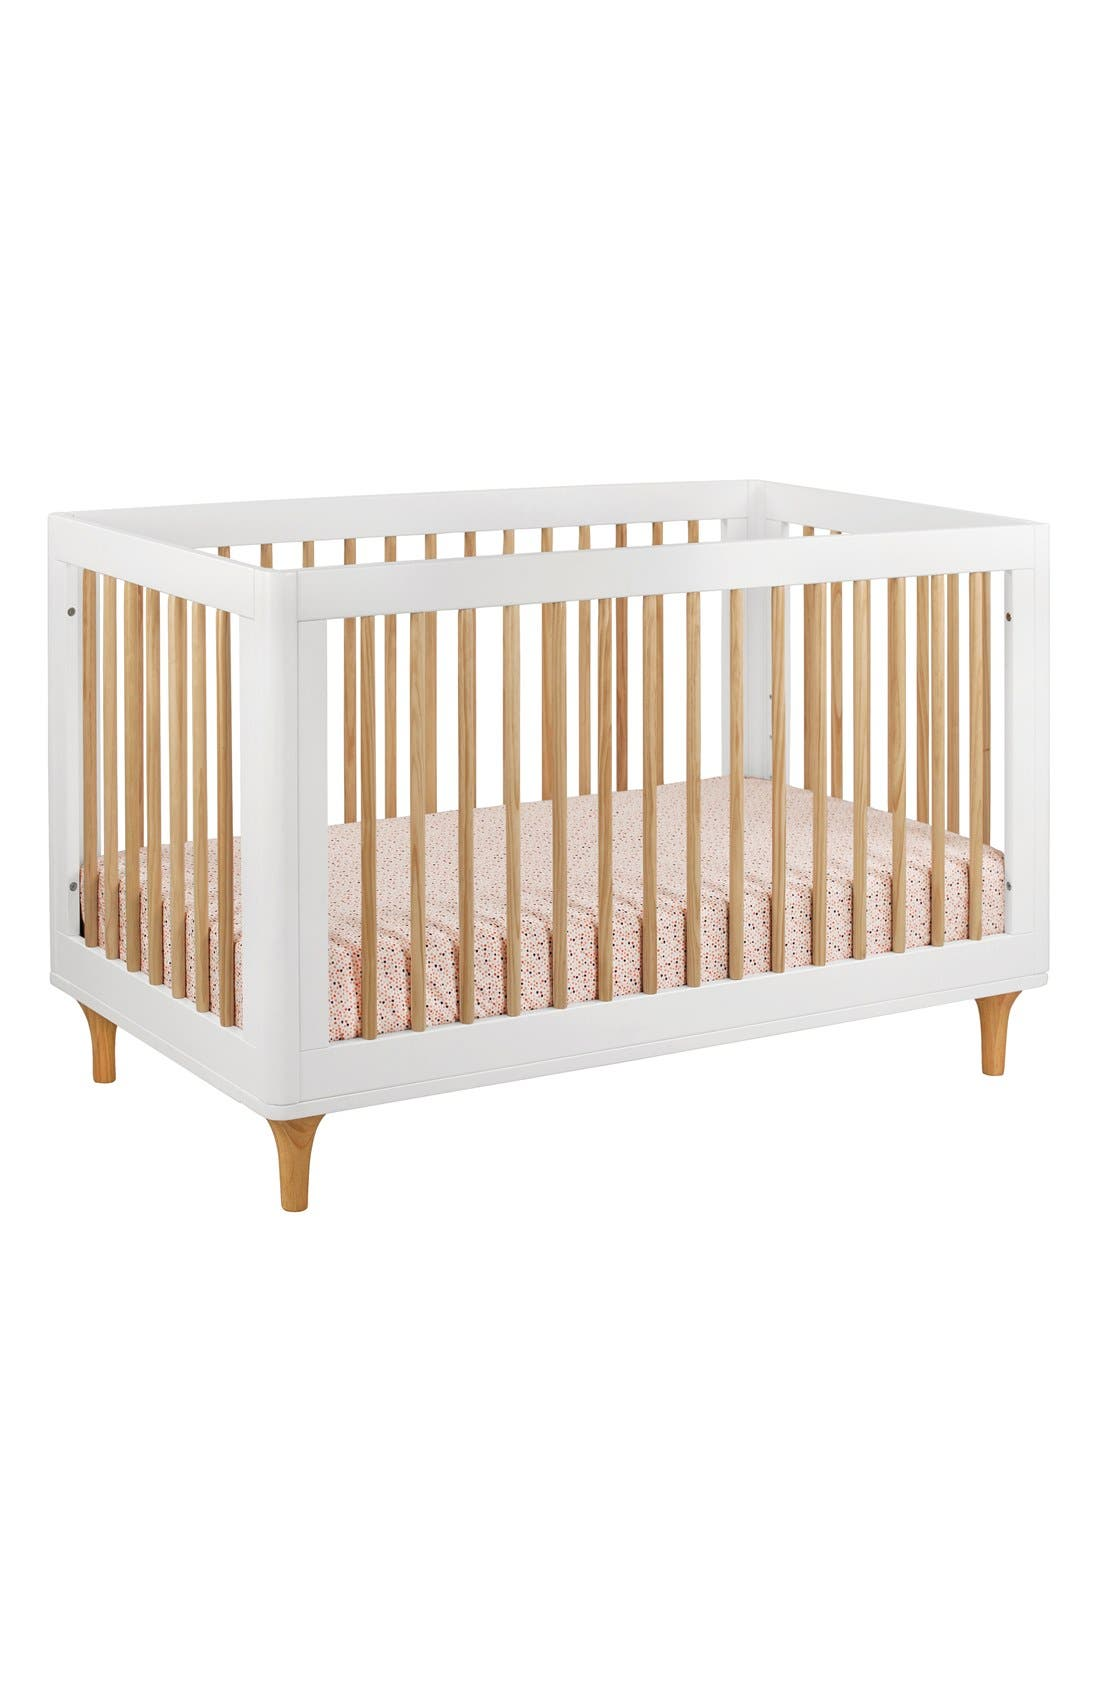 BABYLETTO 'Lolly' 3-in-1 Convertible Crib, Main, color, 250